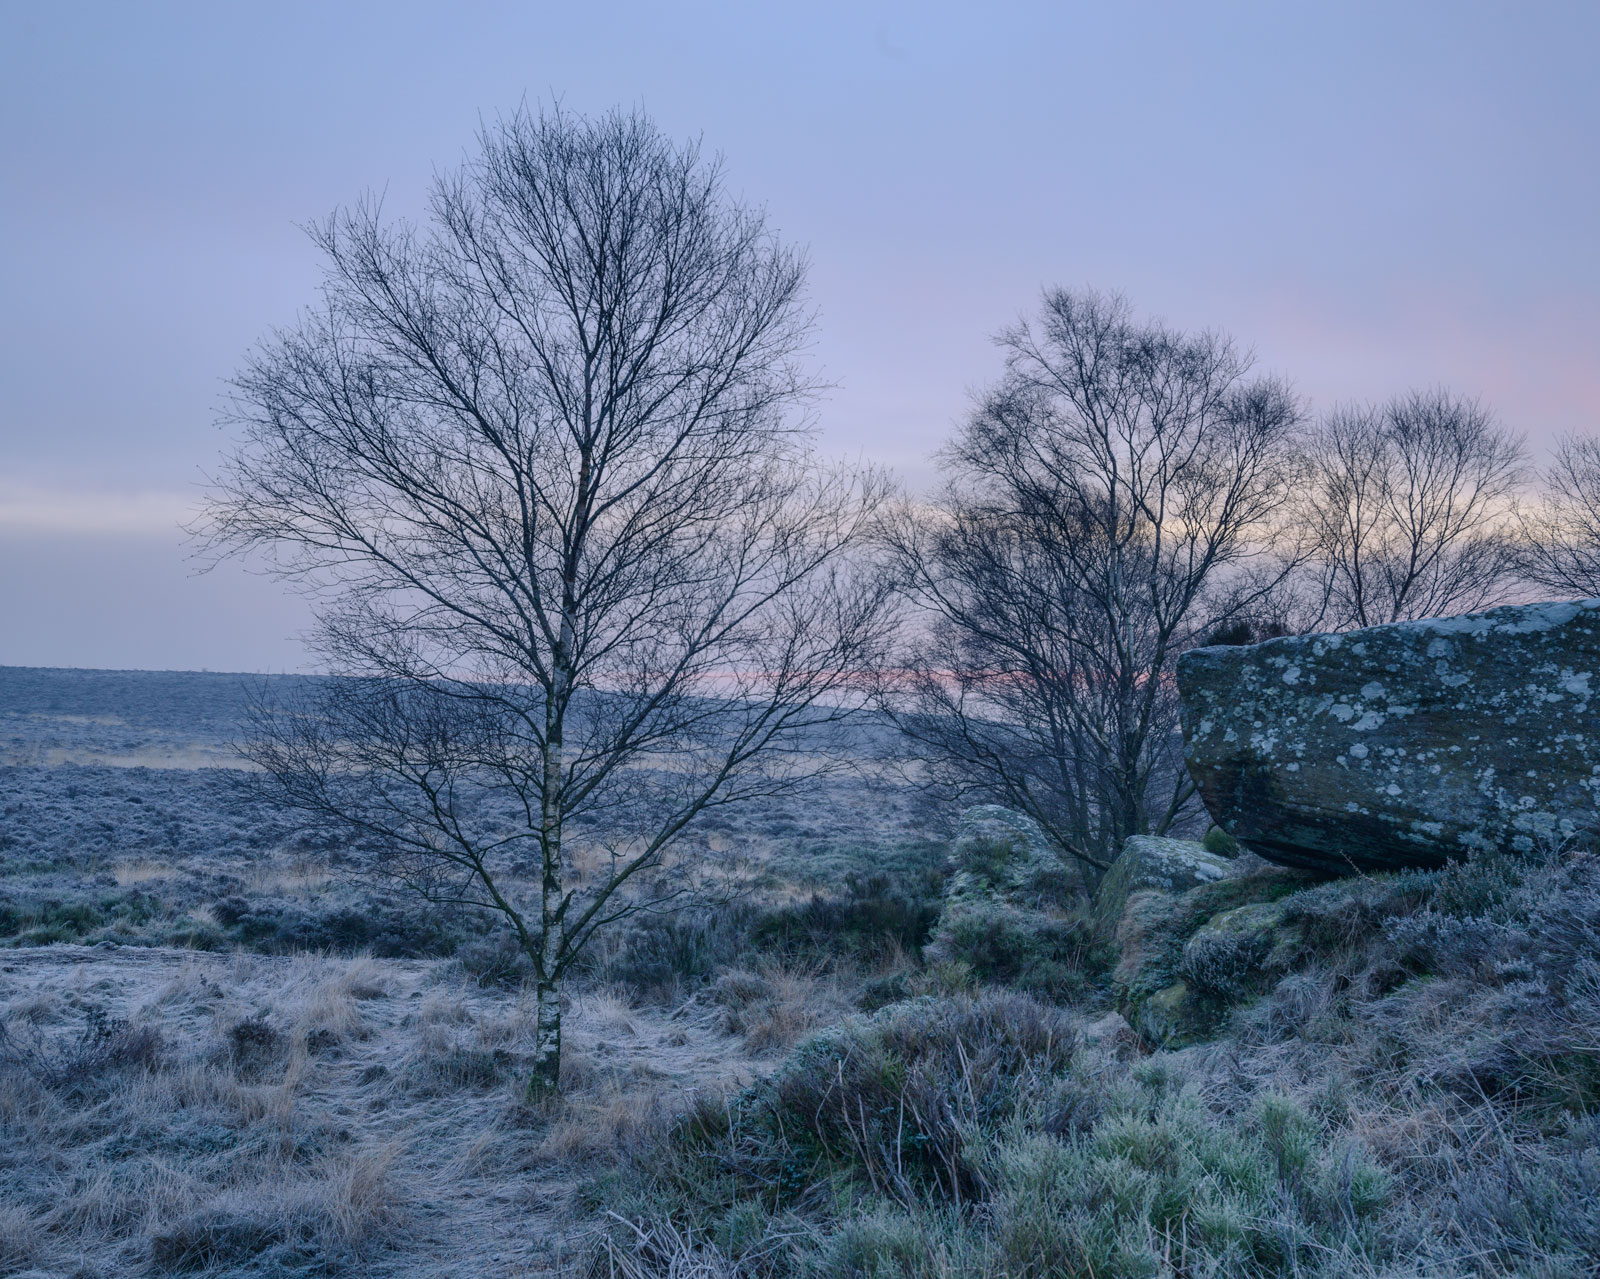 Birch trees and boulders at Dawn, Brimham Rocks